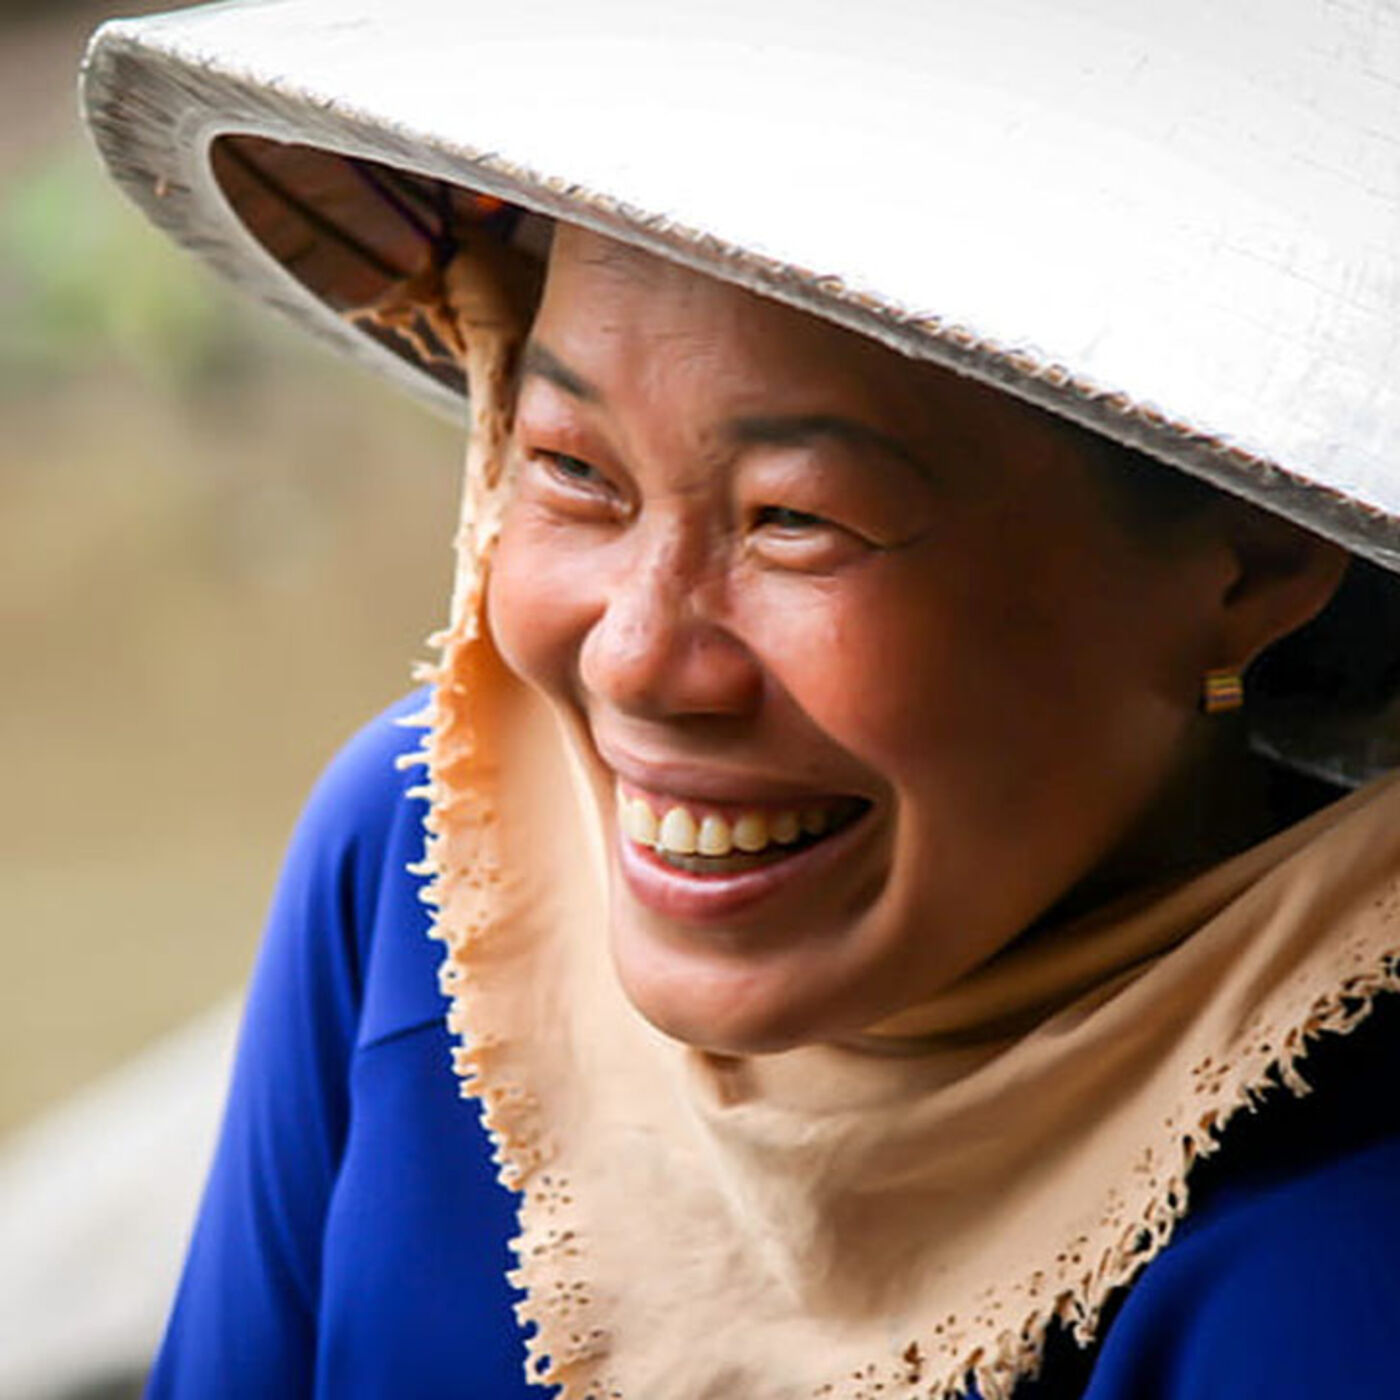 Trip to Central Vietnam, My Fave ADJECTIVE, More PRONUNCIATION Tips, Blue Dragon Children's Foundation, The Korean Holiday 'Chuseok' (Intermediate)